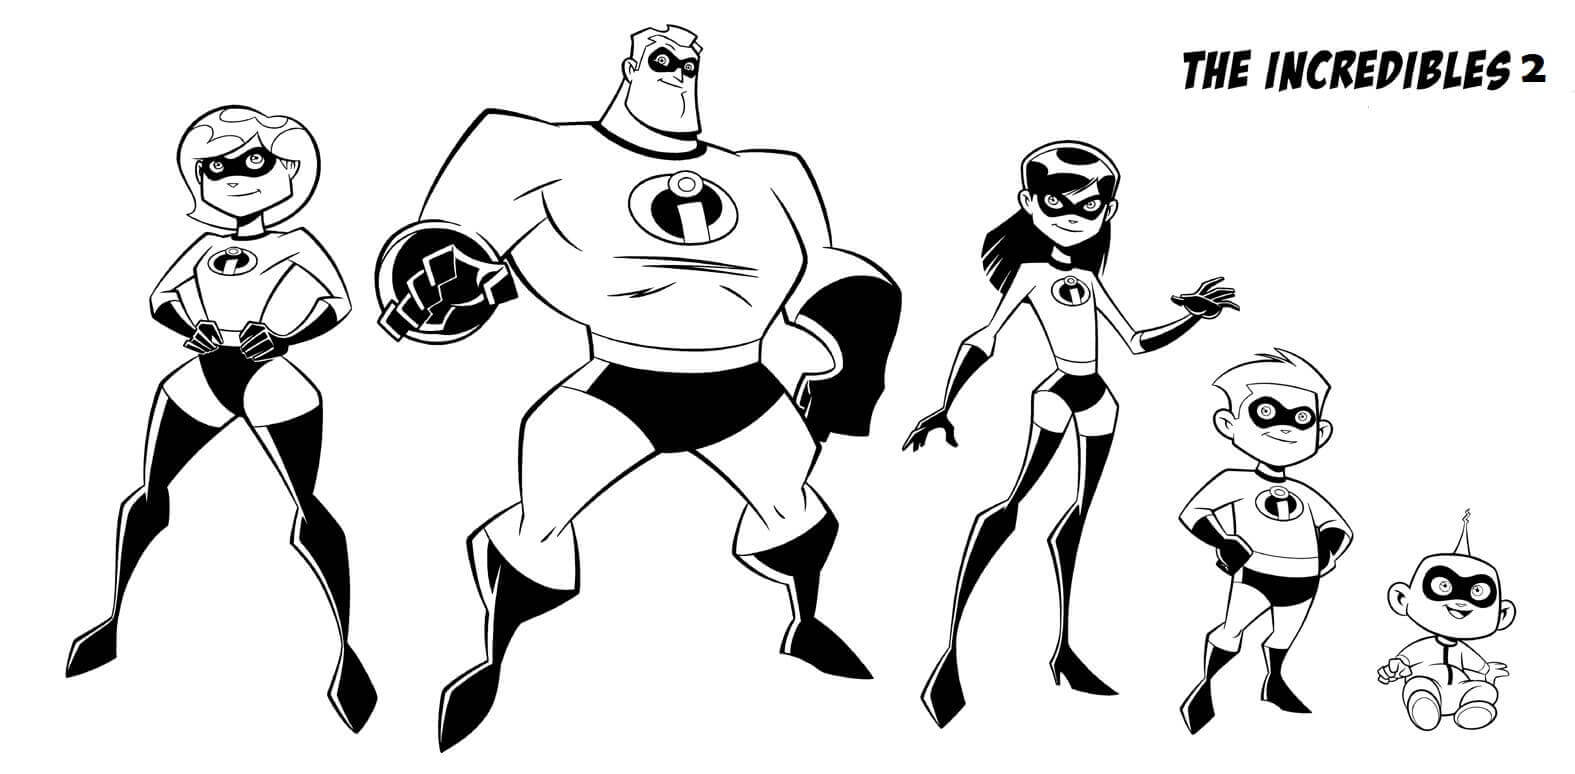 free incredibles 2 coloring pages free printable incredibles 2 coloring pages incredibles 2 free coloring pages